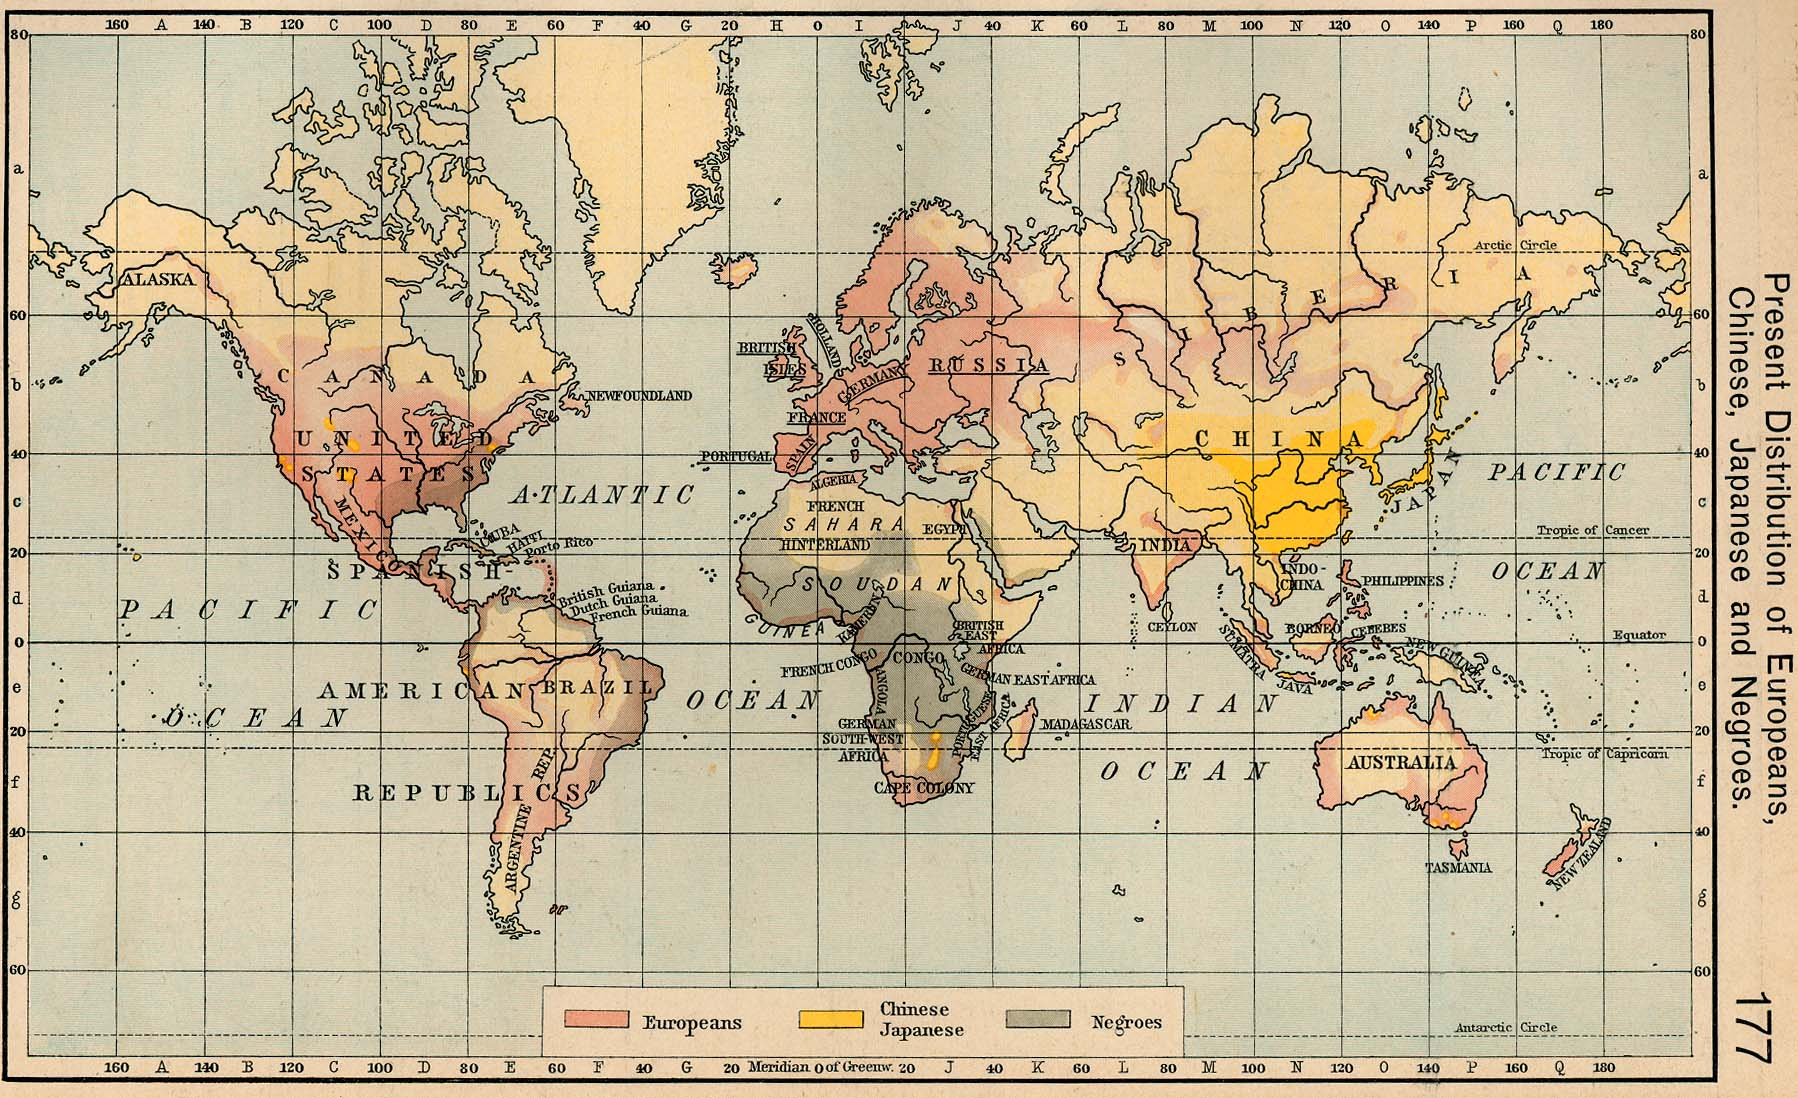 present distribution of europeans chinese japanese and negroes 1911